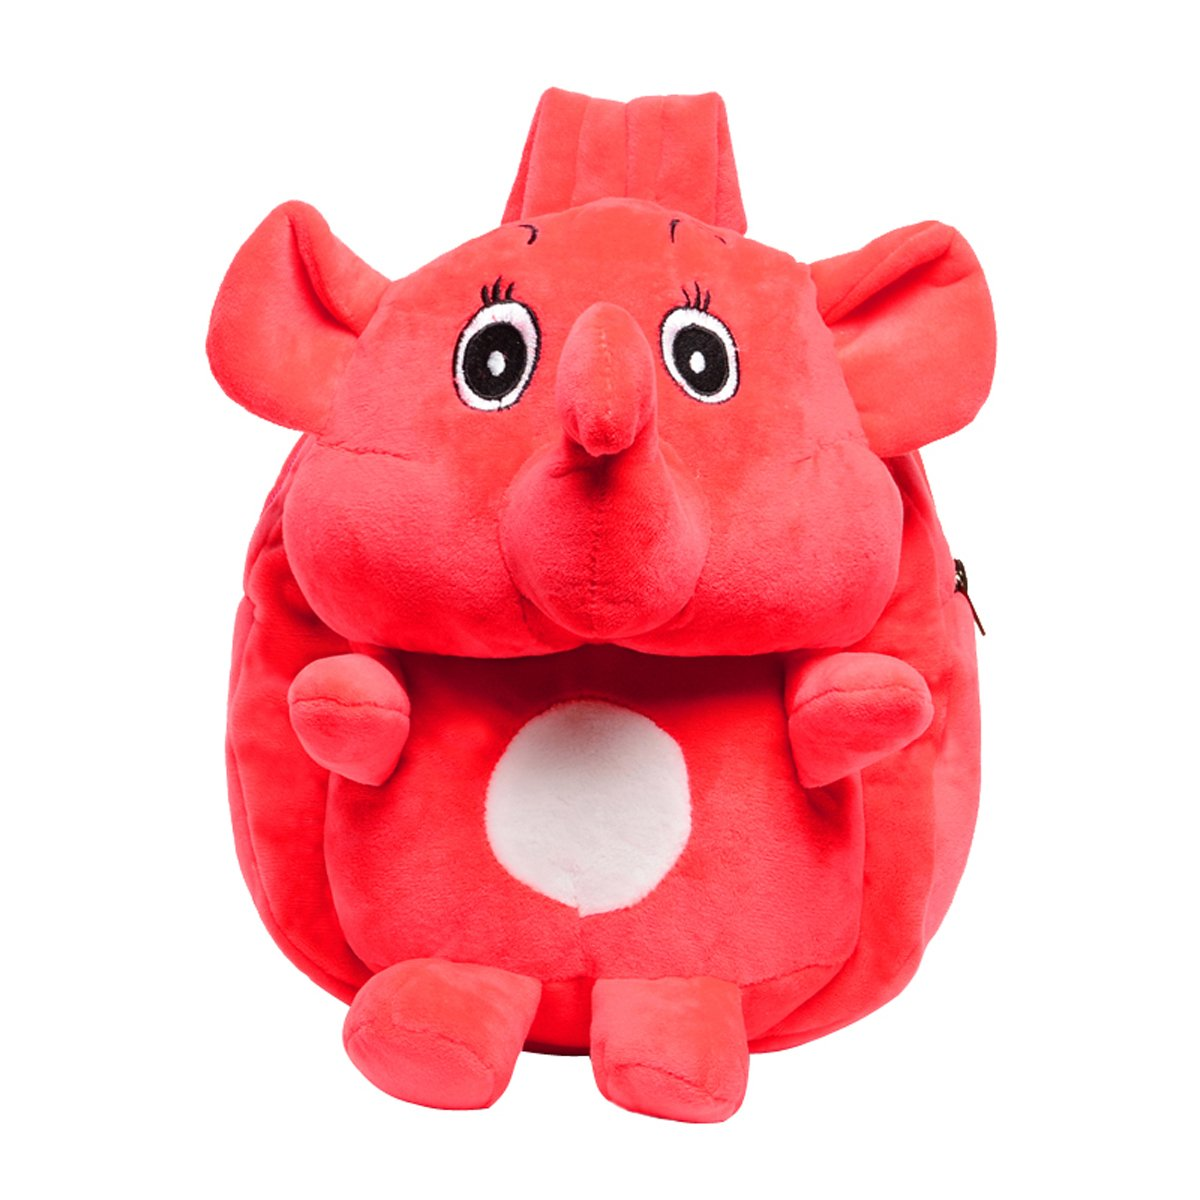 Adorable Elephant Schoolbag – Nursery レッド Smallバックパックリュックサックバッグfor Baby ( Schoolbag 1 – 3yrs ) レッド レッド B00XP4P4CM, ツクイマチ:57129518 --- ijpba.info